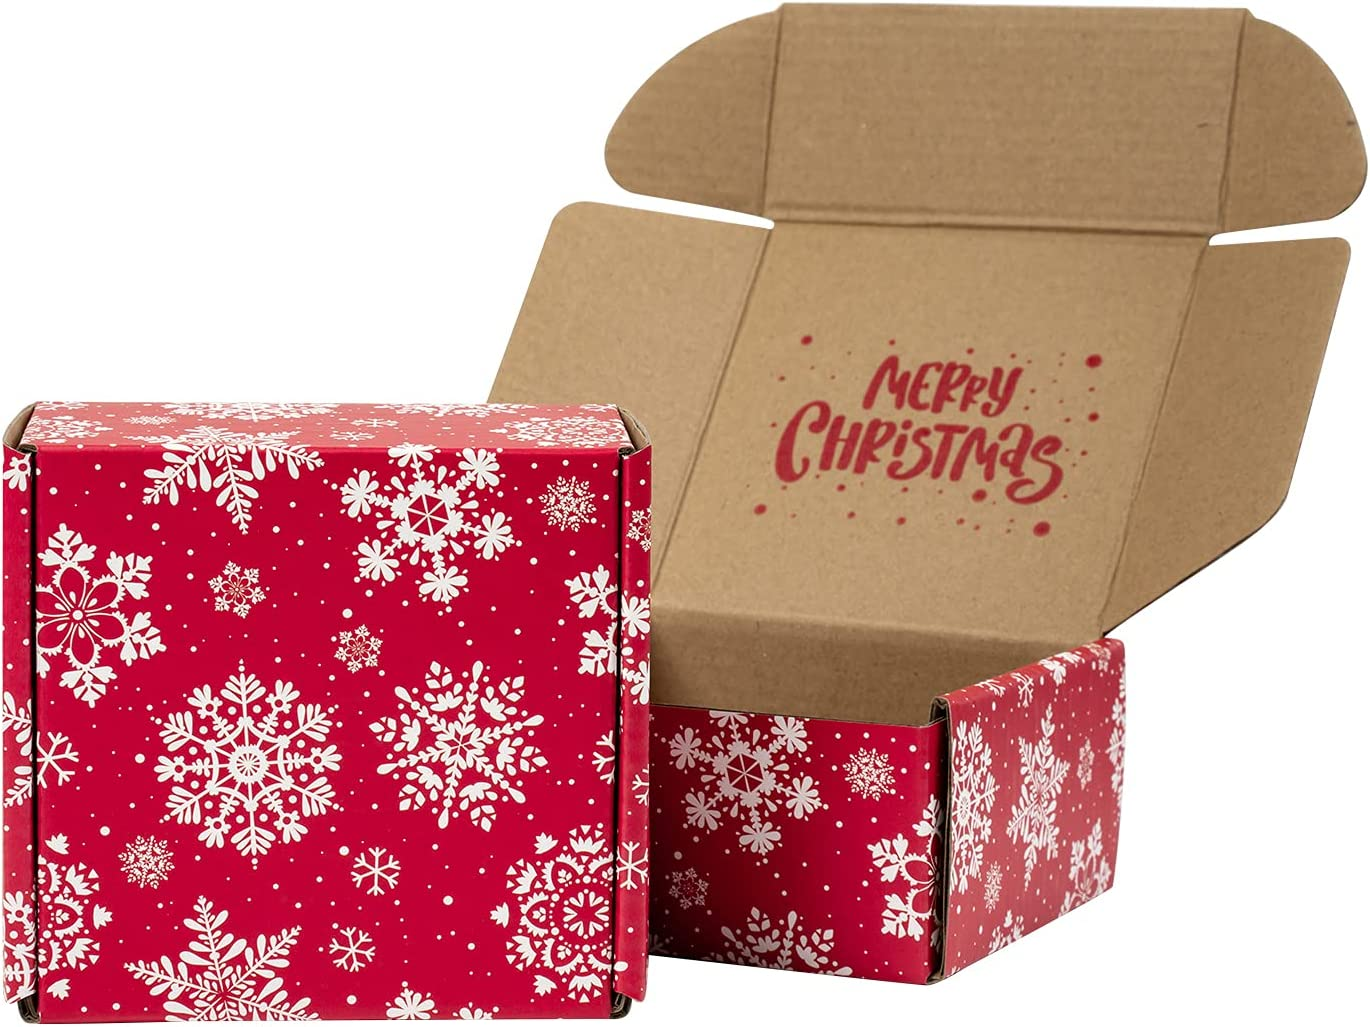 RUSPEPA Christmas Recyclable Corrugated Box Red - Mailers Tampa Mall Sale item Cardbo